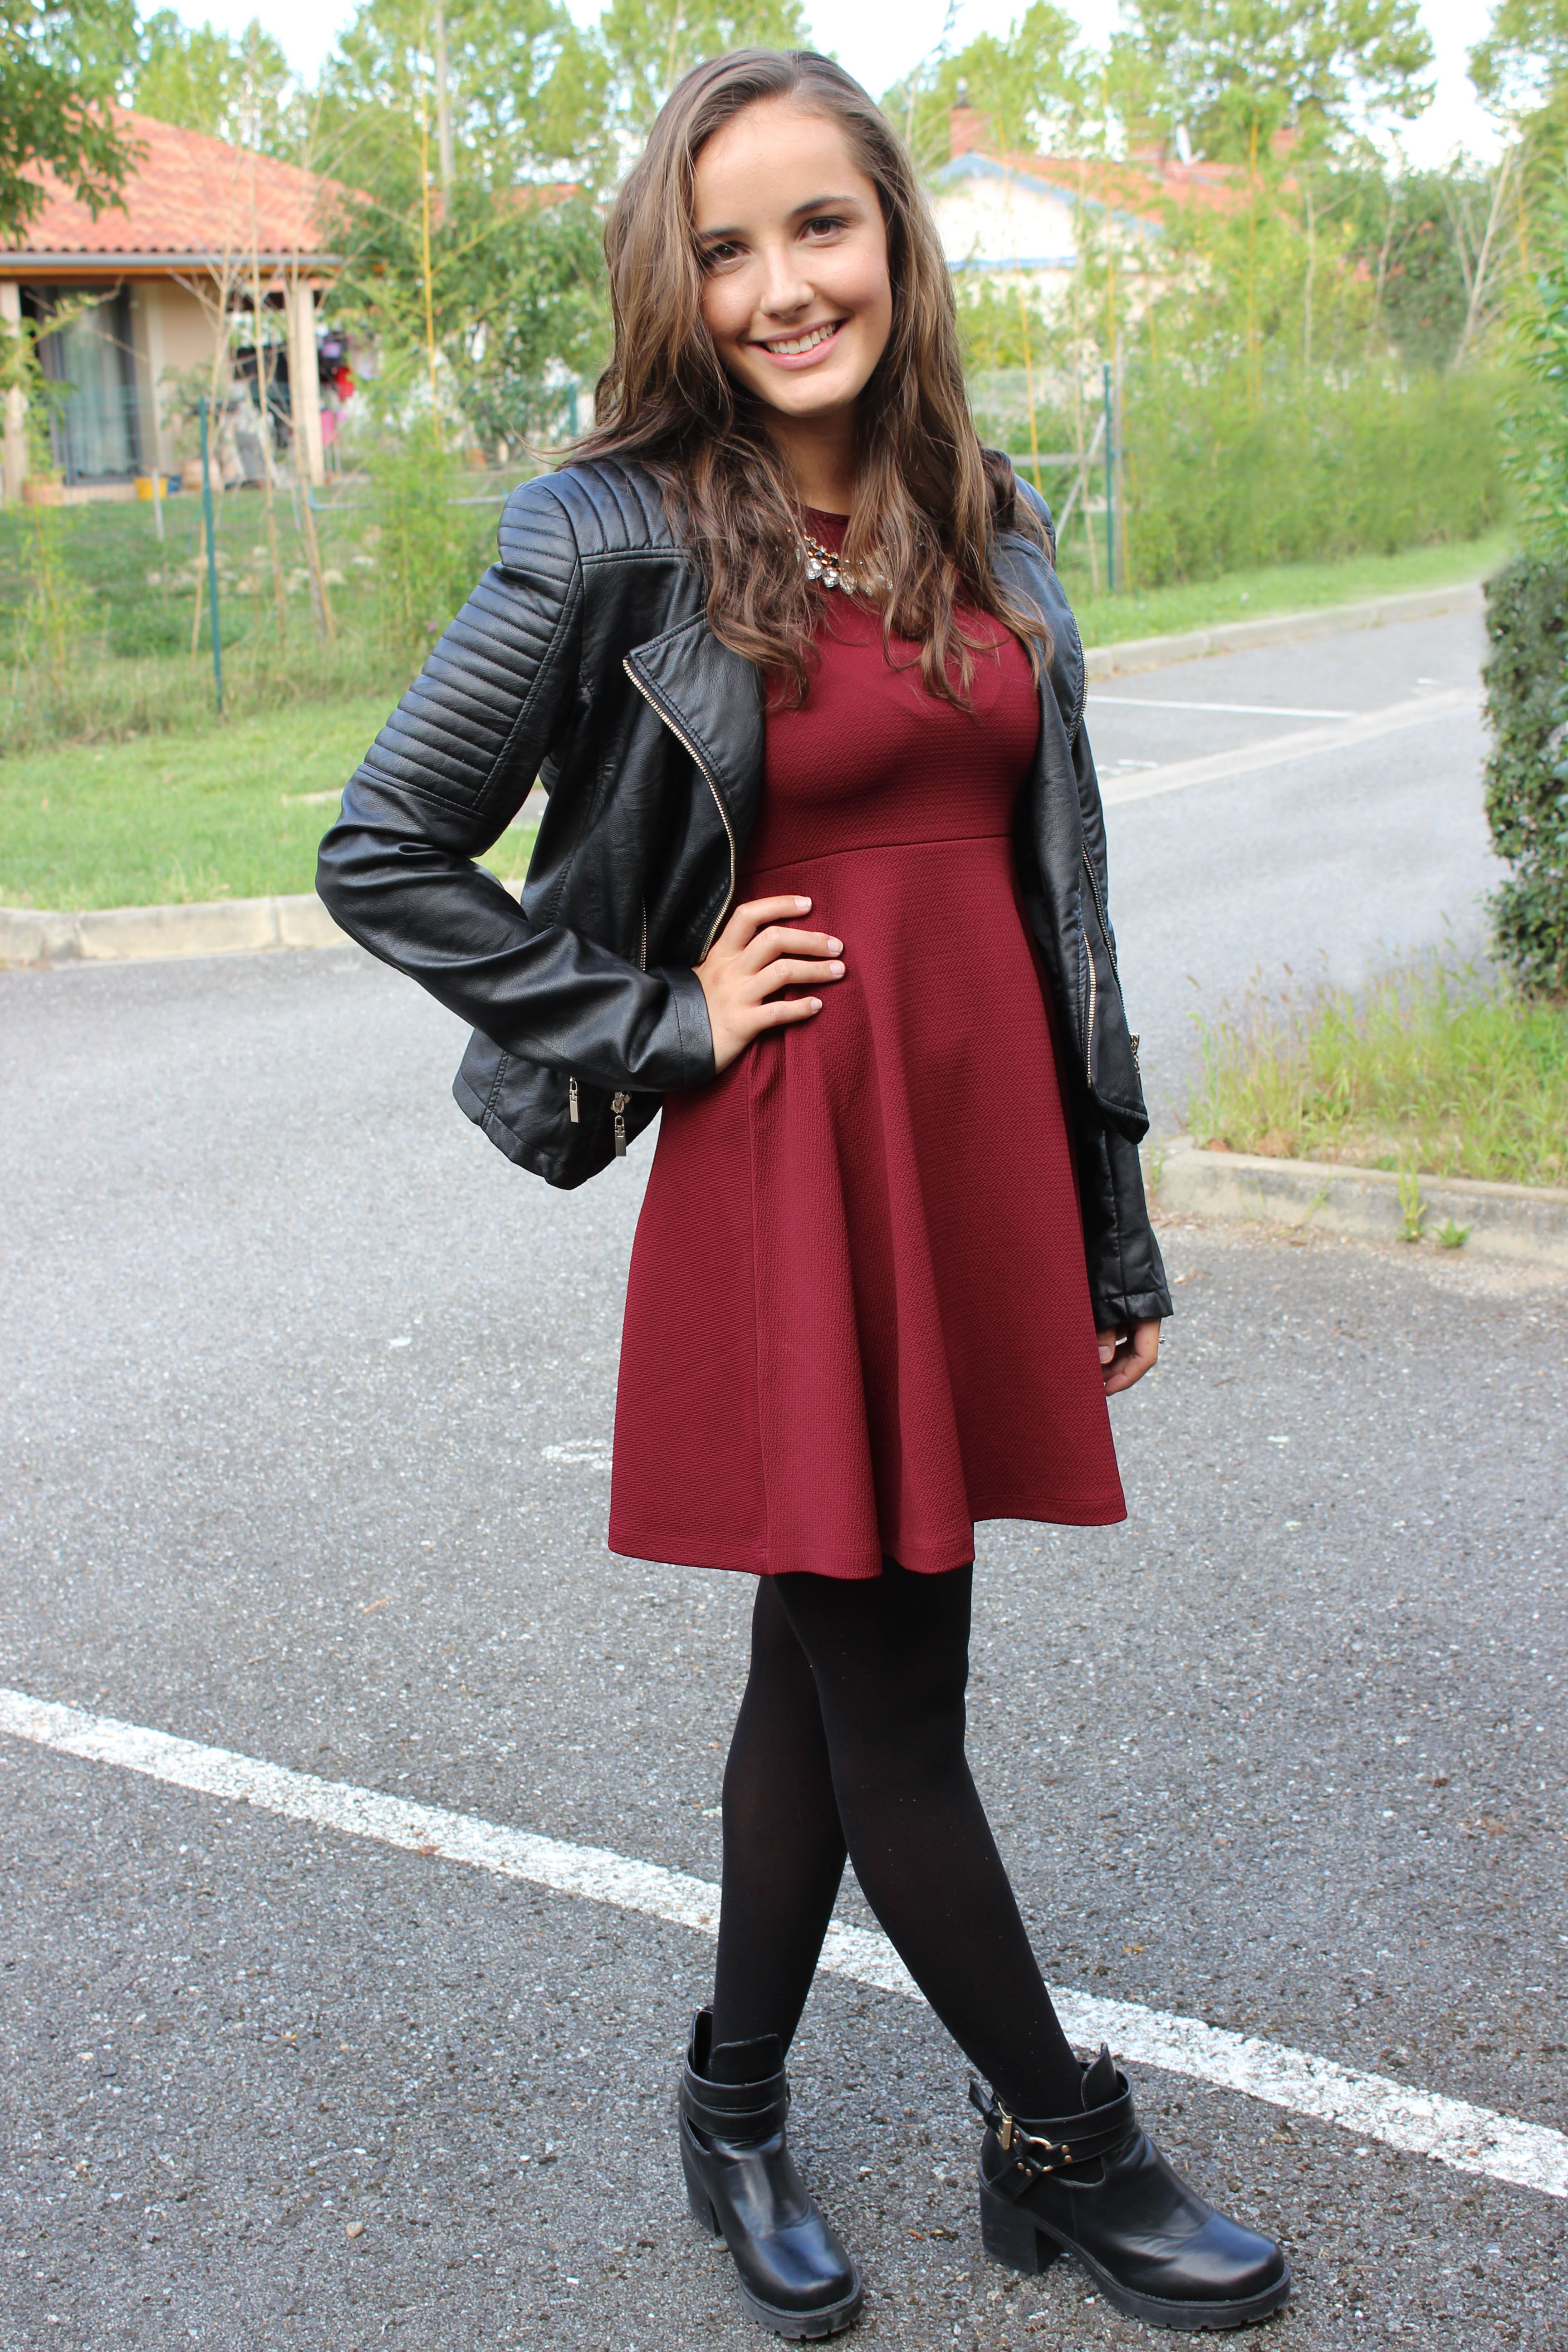 Du Tenue ElegantJust Perfect Jour1So Veste Cuir Simili CorBWedx